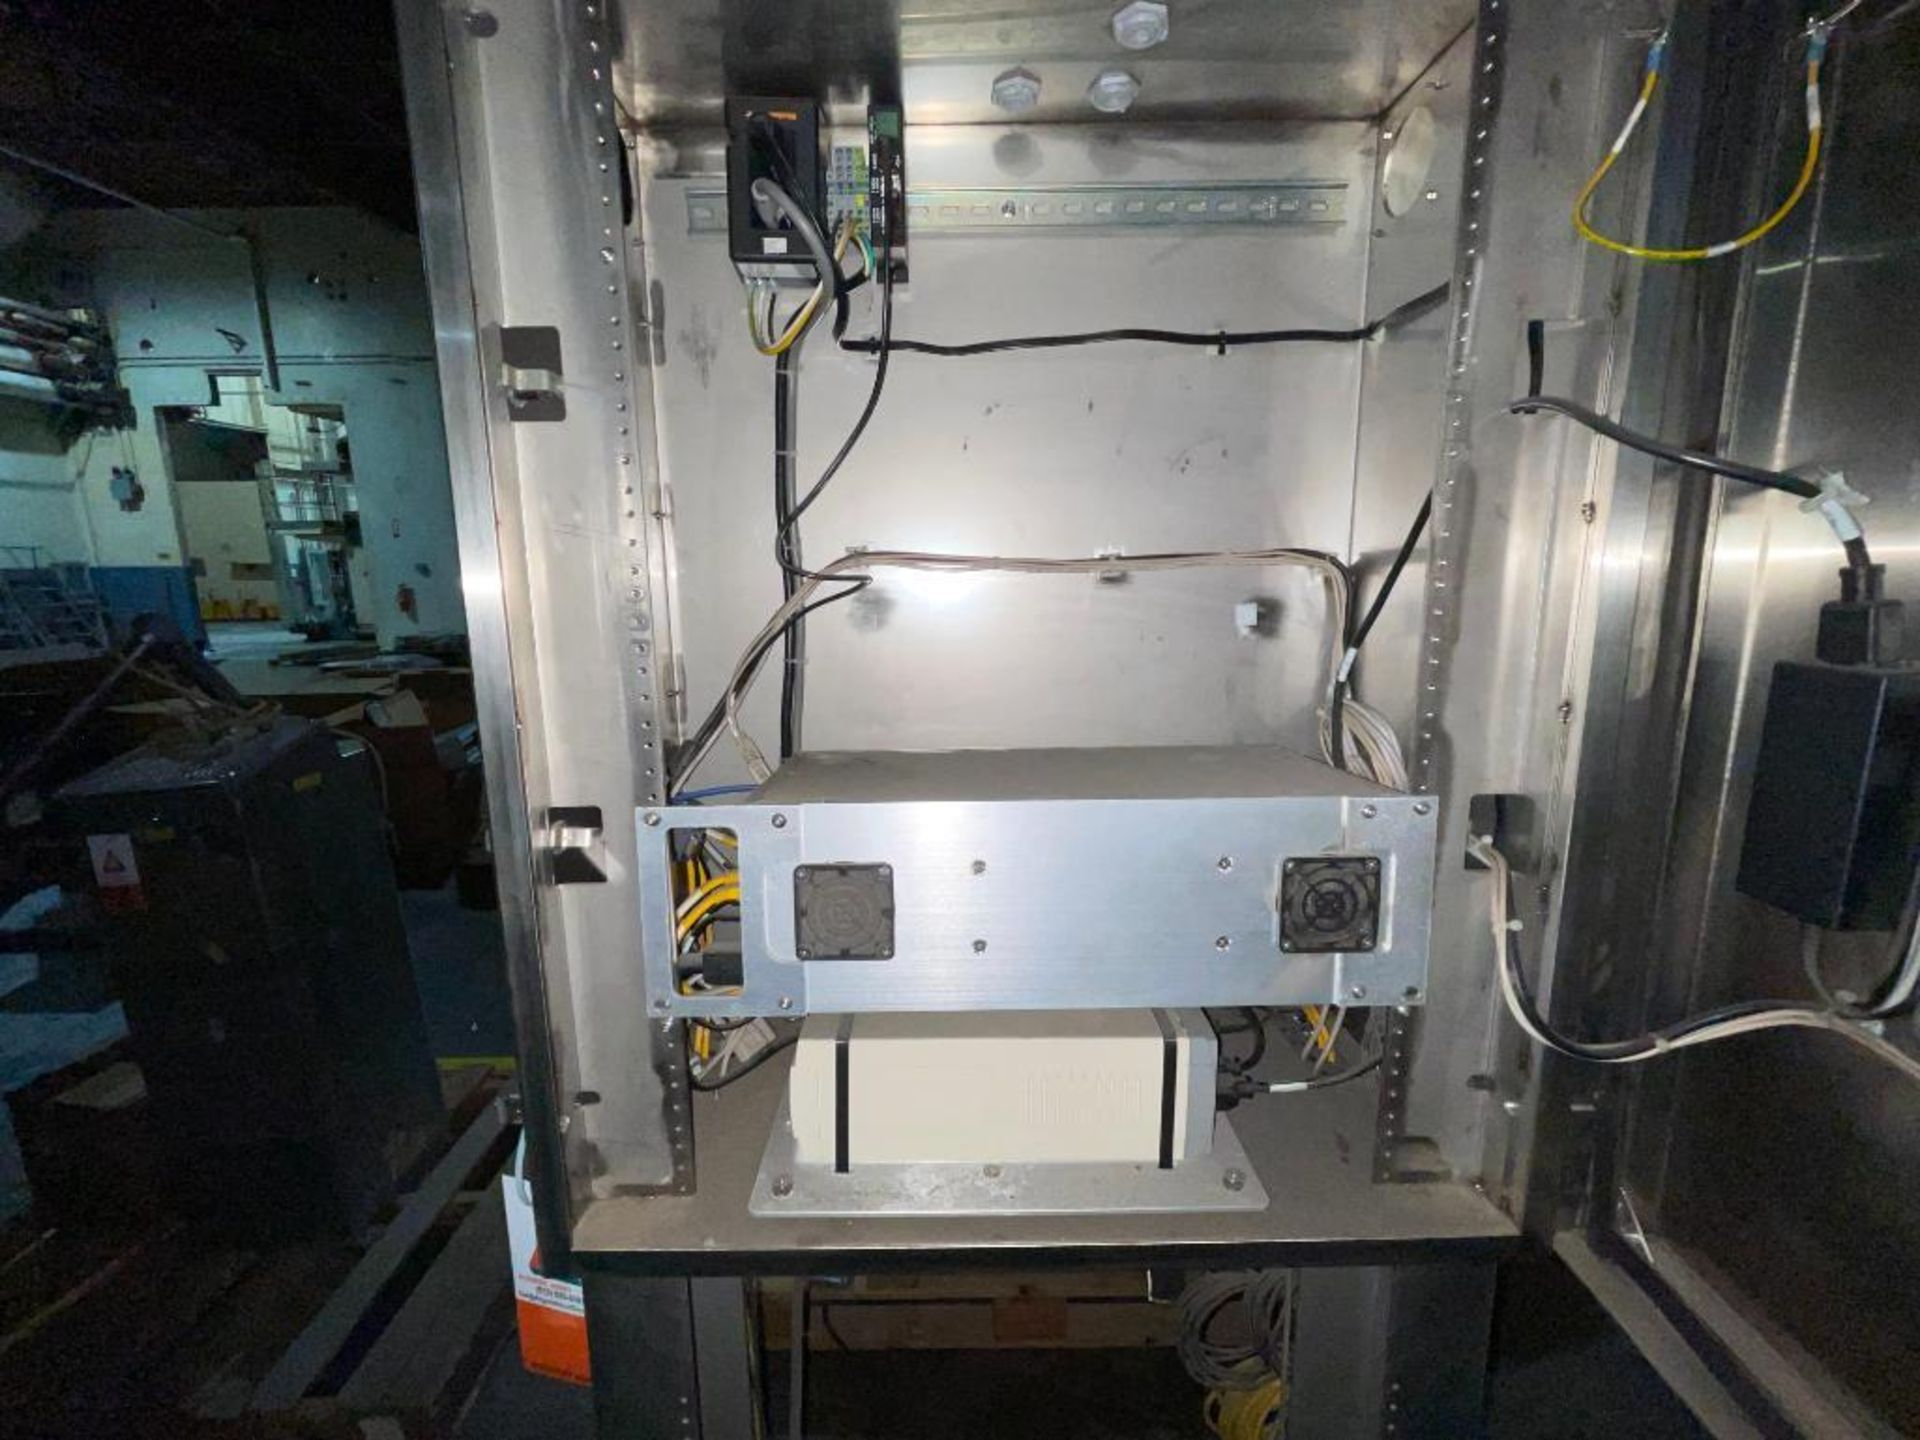 stainless steel pedestal control panel - Image 9 of 20